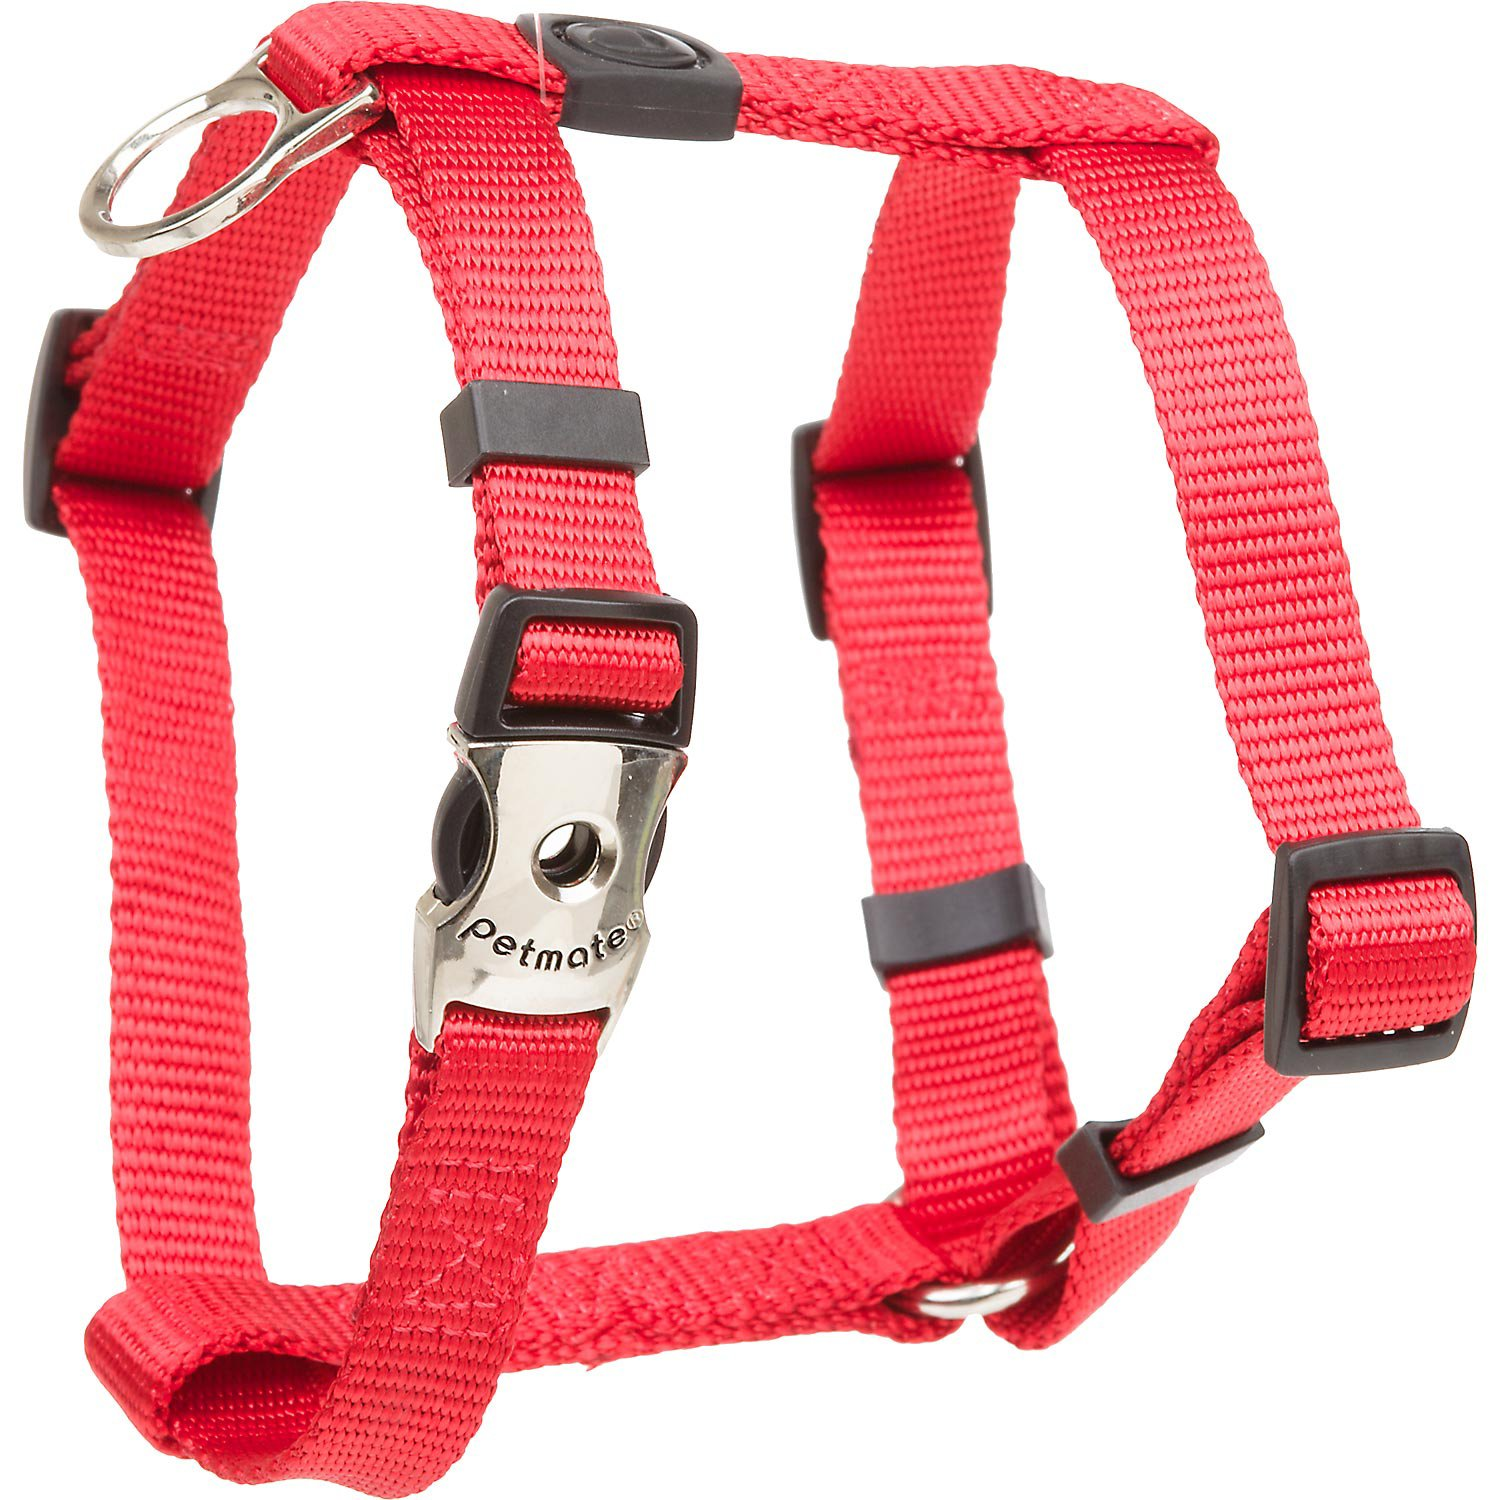 Aspen Pet by Petmate Deluxe Signature Fire Single Ply Nylon Harness